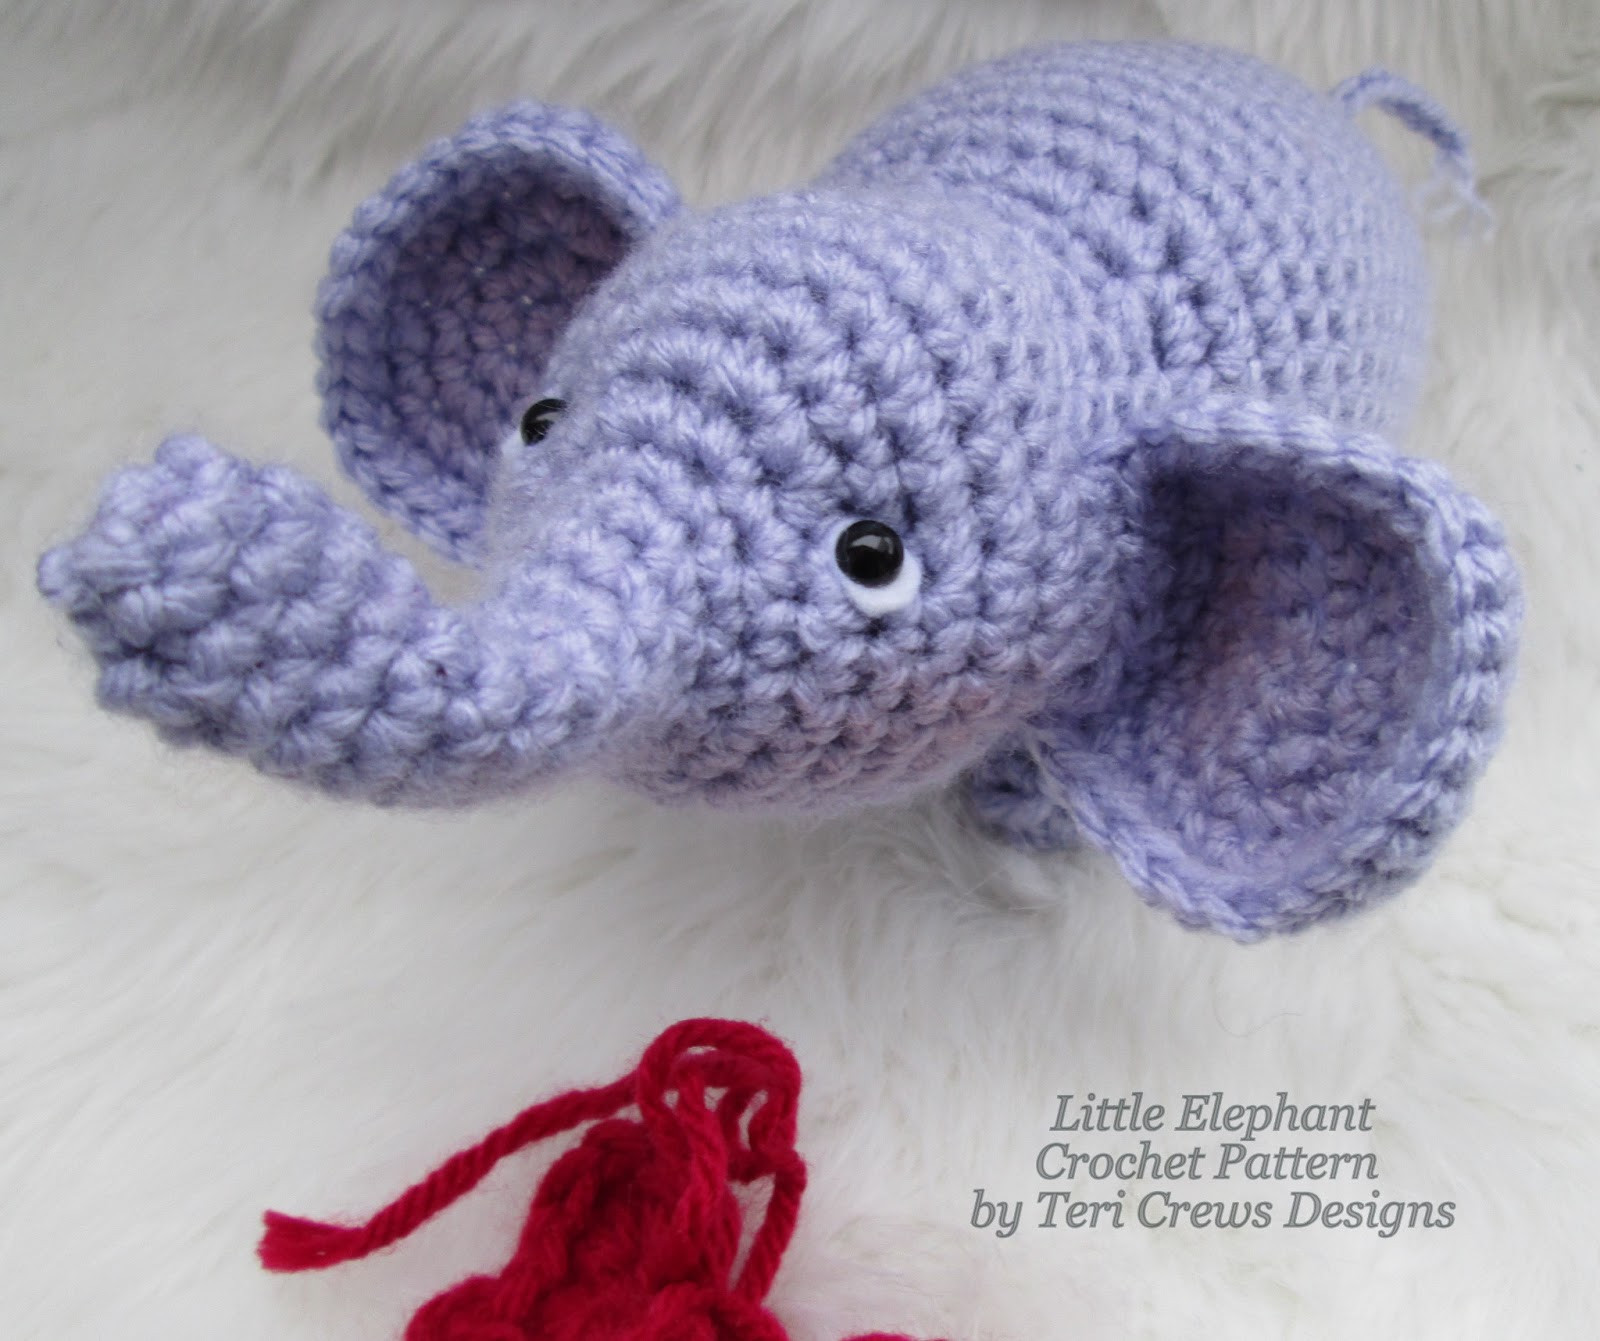 Crochet Elephant Awesome Teri S Blog Free Little Elephant Crochet Pattern Of Amazing 49 Models Crochet Elephant